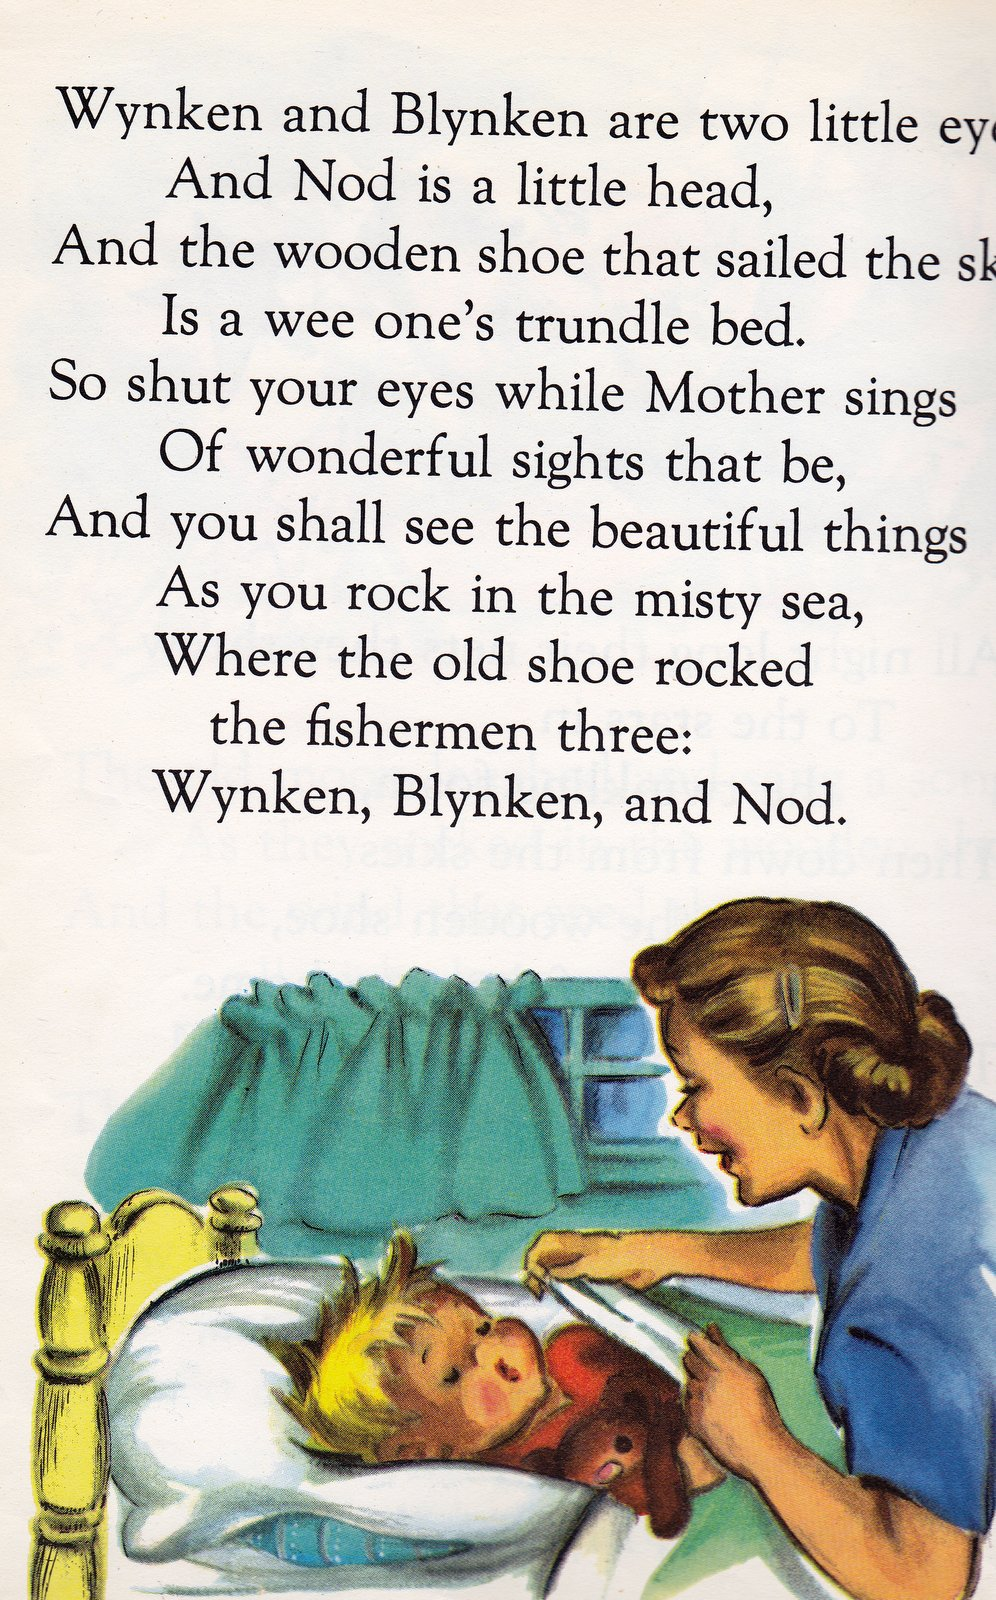 I Love The Wynken Blynken And Nod Poem So Beautiful Soothing For Bedtime Routines Haven T Been Very Peaceful Around Here